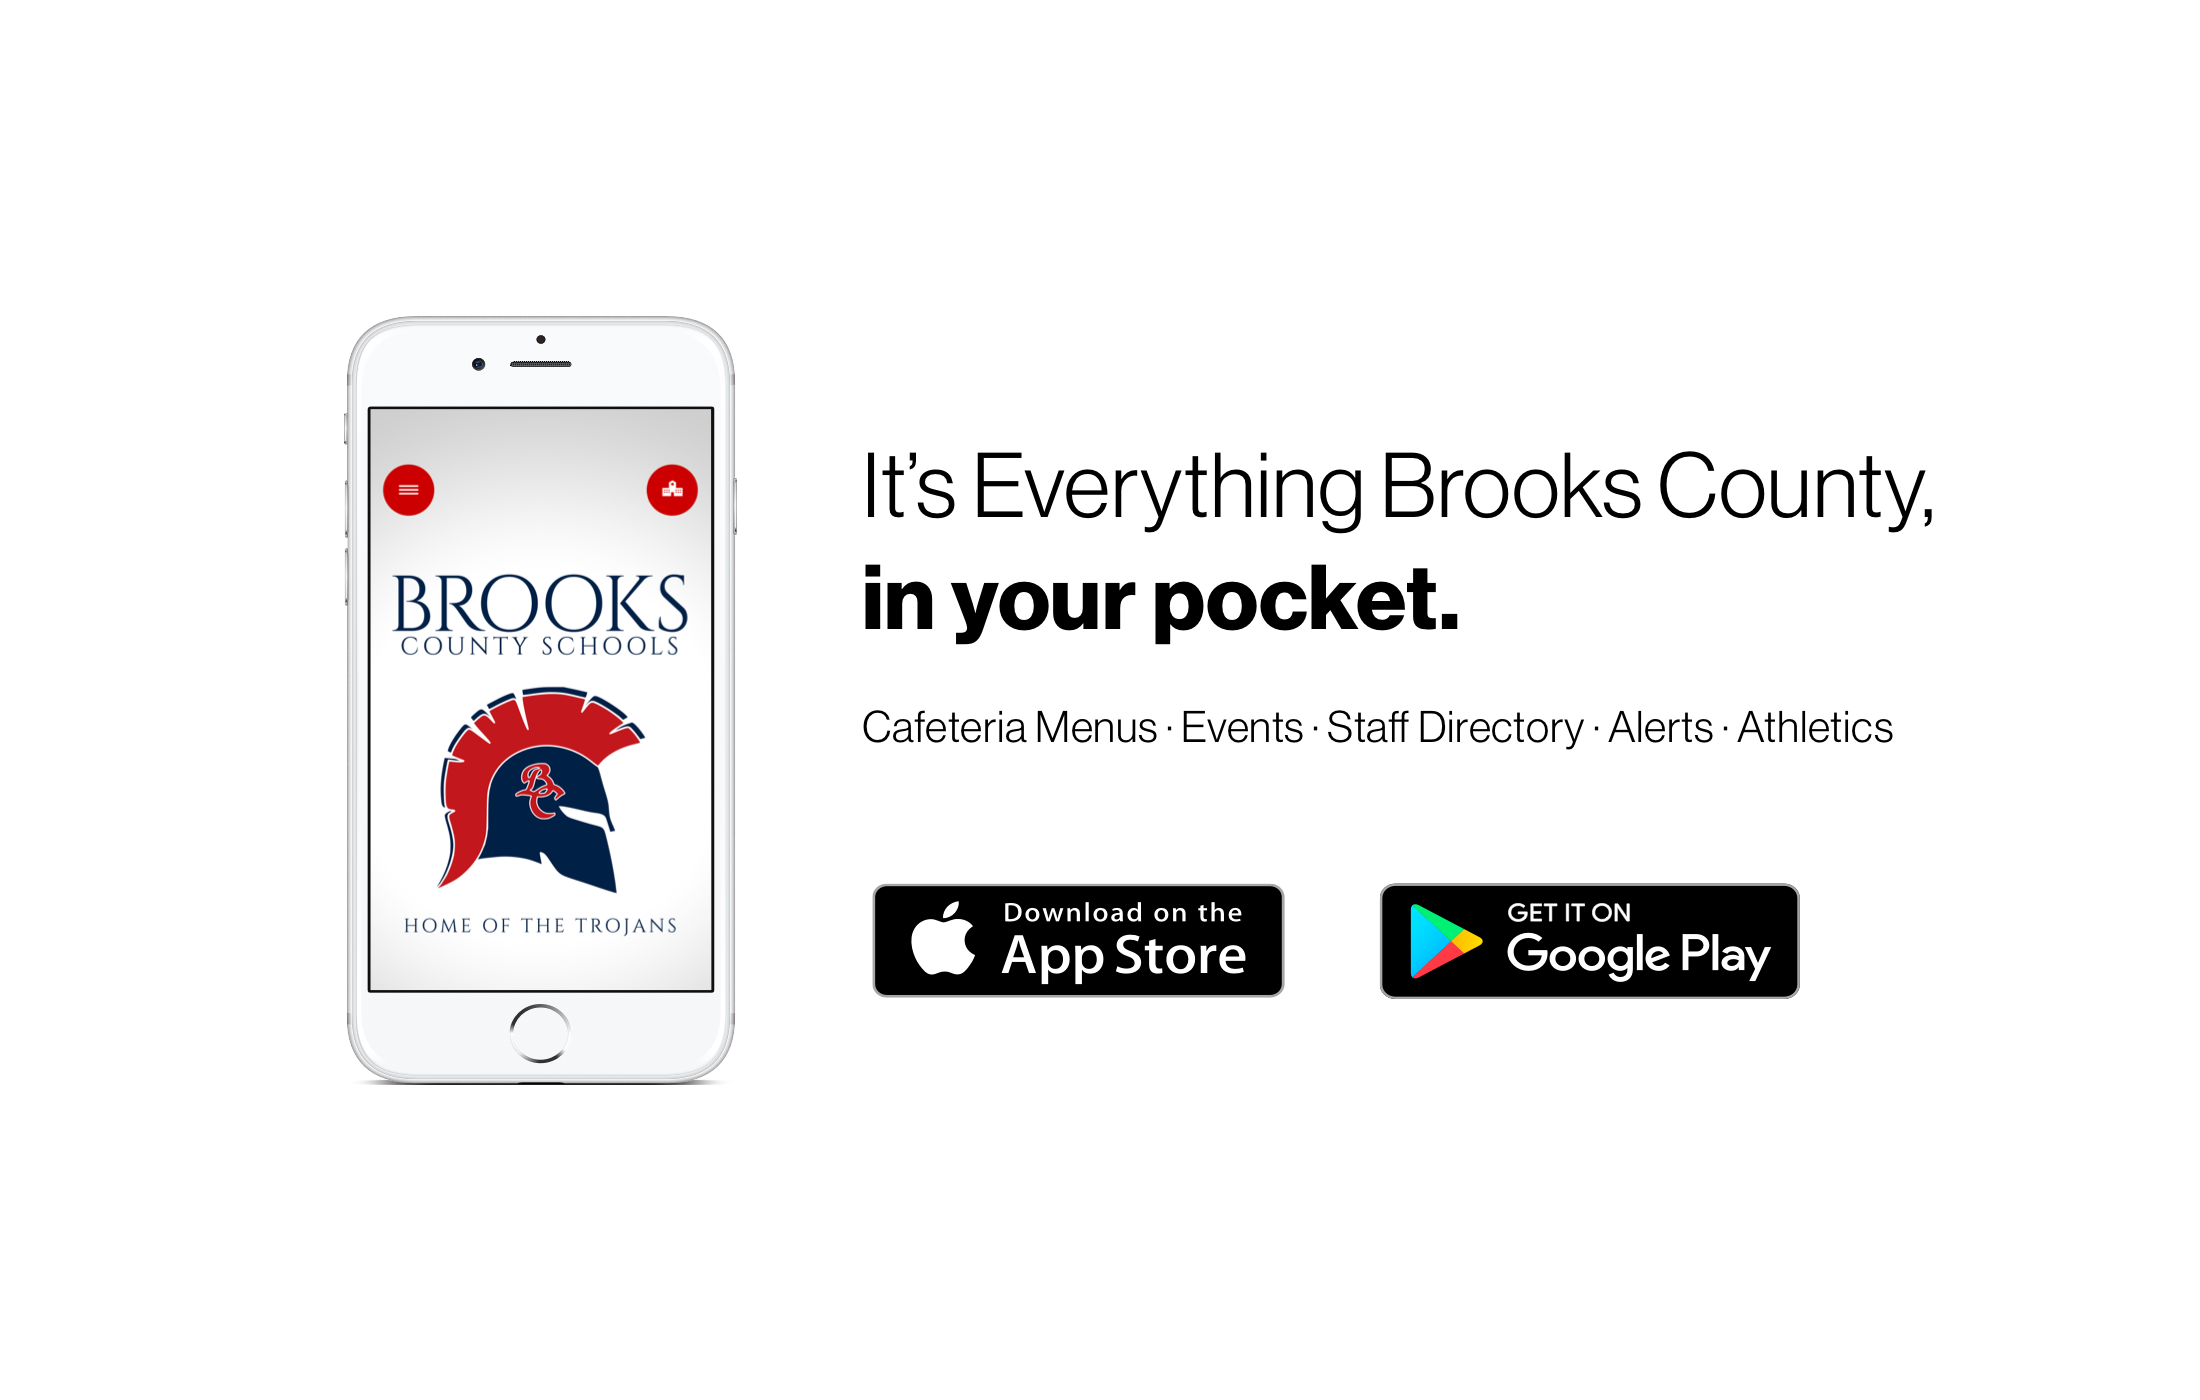 It's everything Brooks County in your pocket